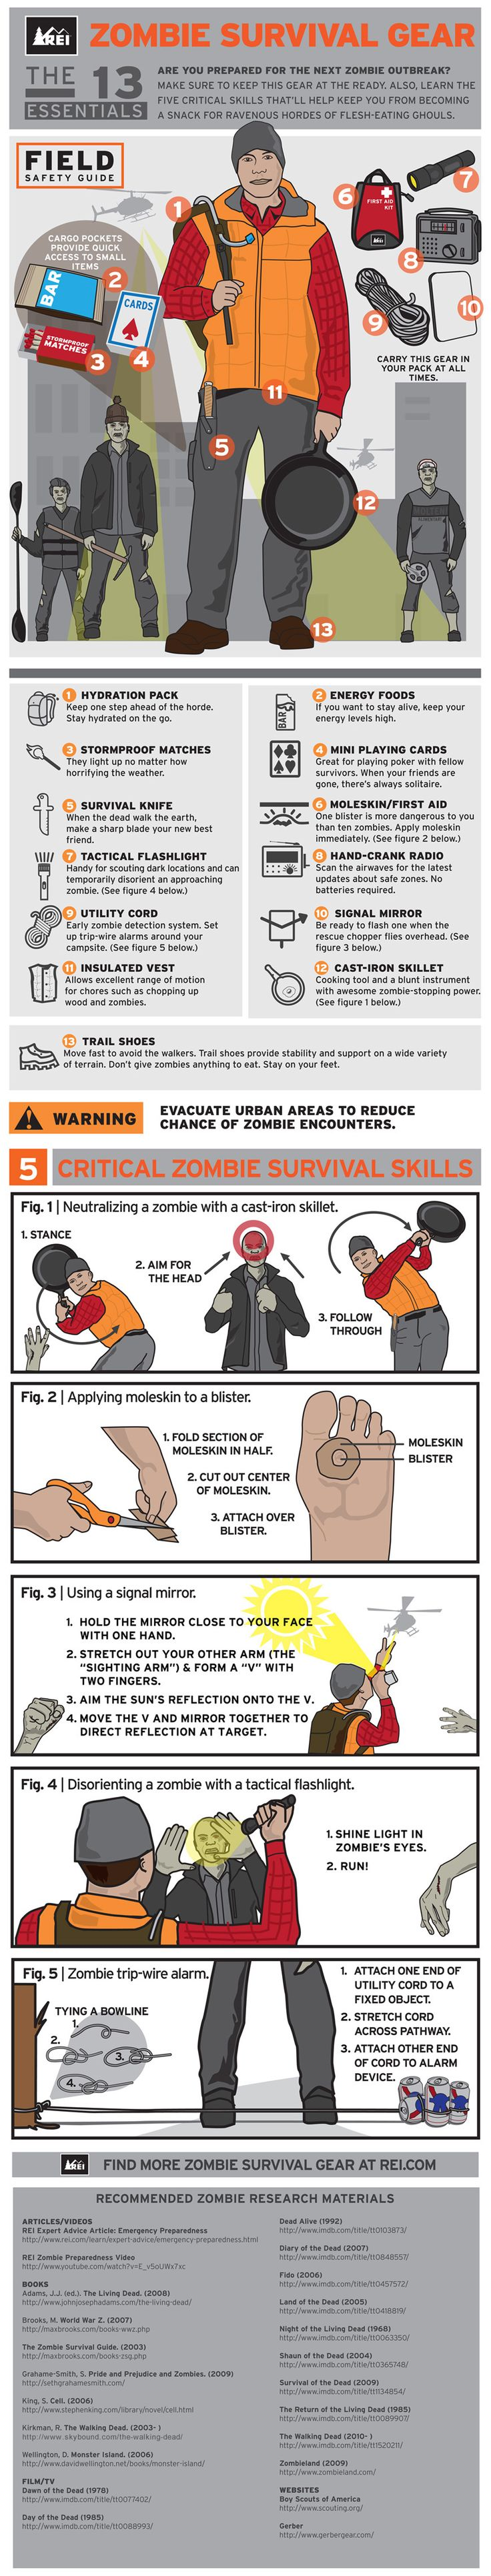 How to Survive the Zombie Apocalypse, by REI